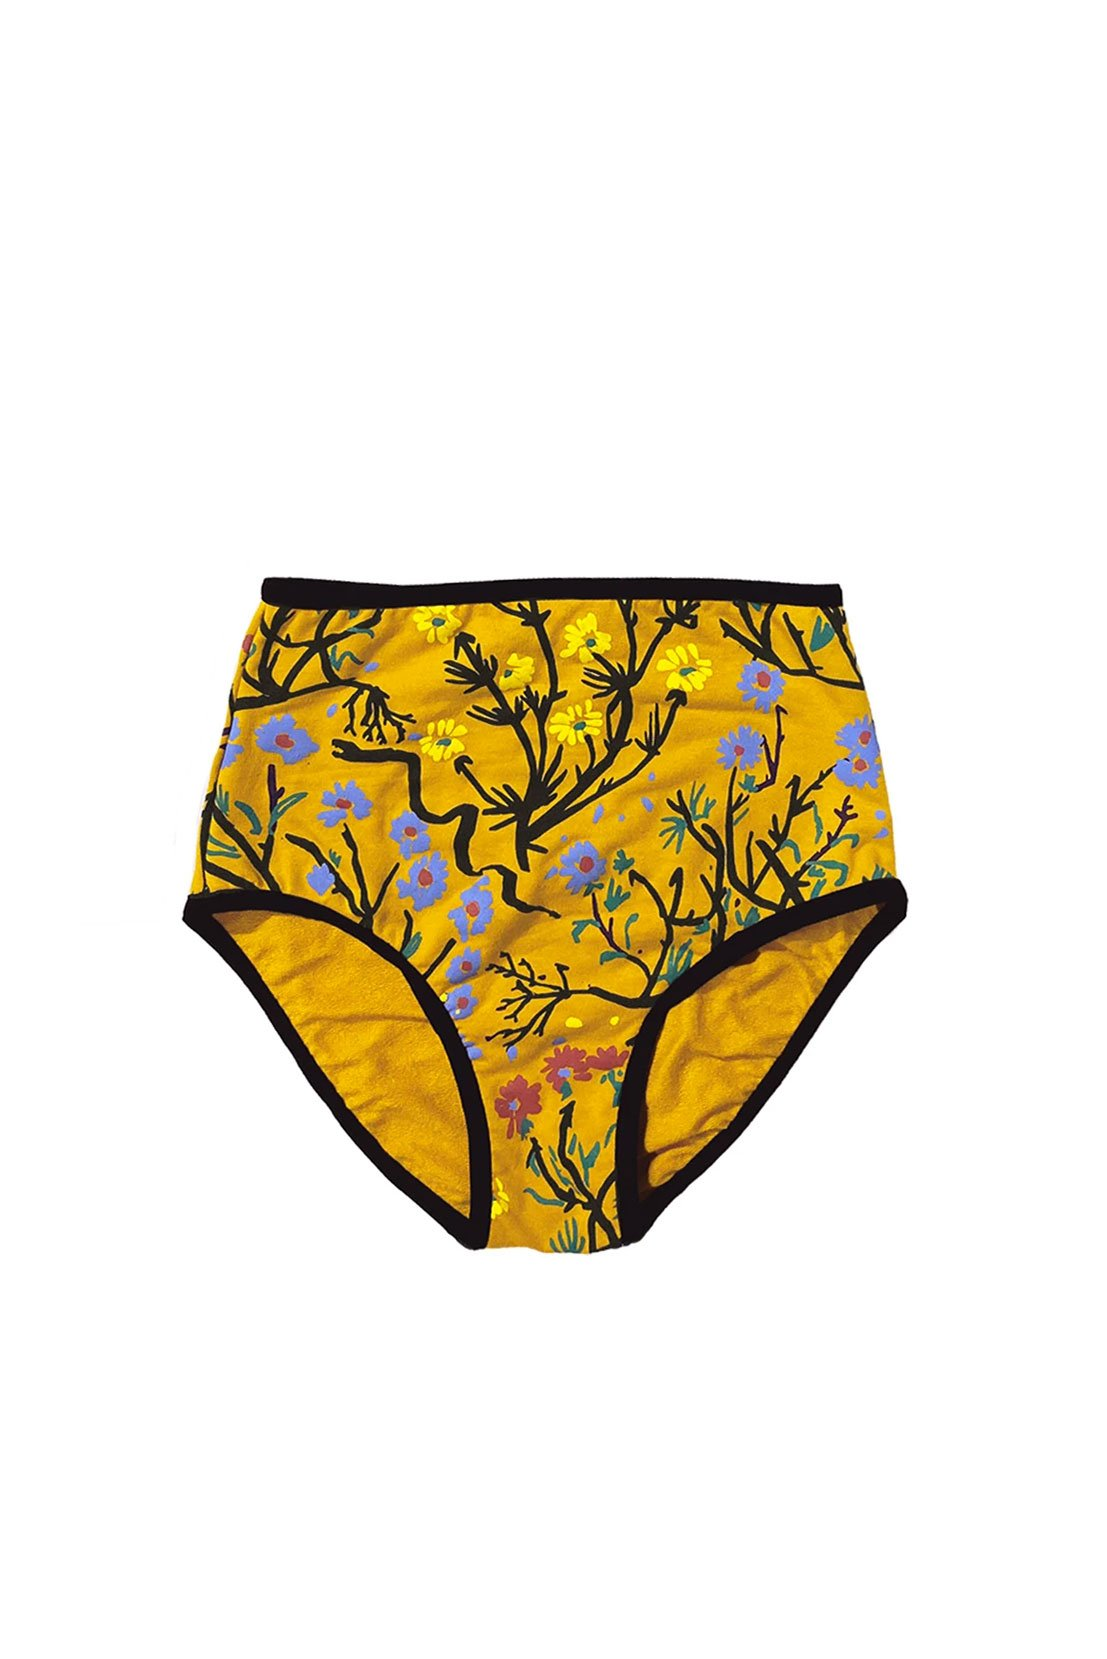 High rise underwear in the marigold uprooted pattern from thief an bandit made from a cotton and bamboo blend and non toxic inks